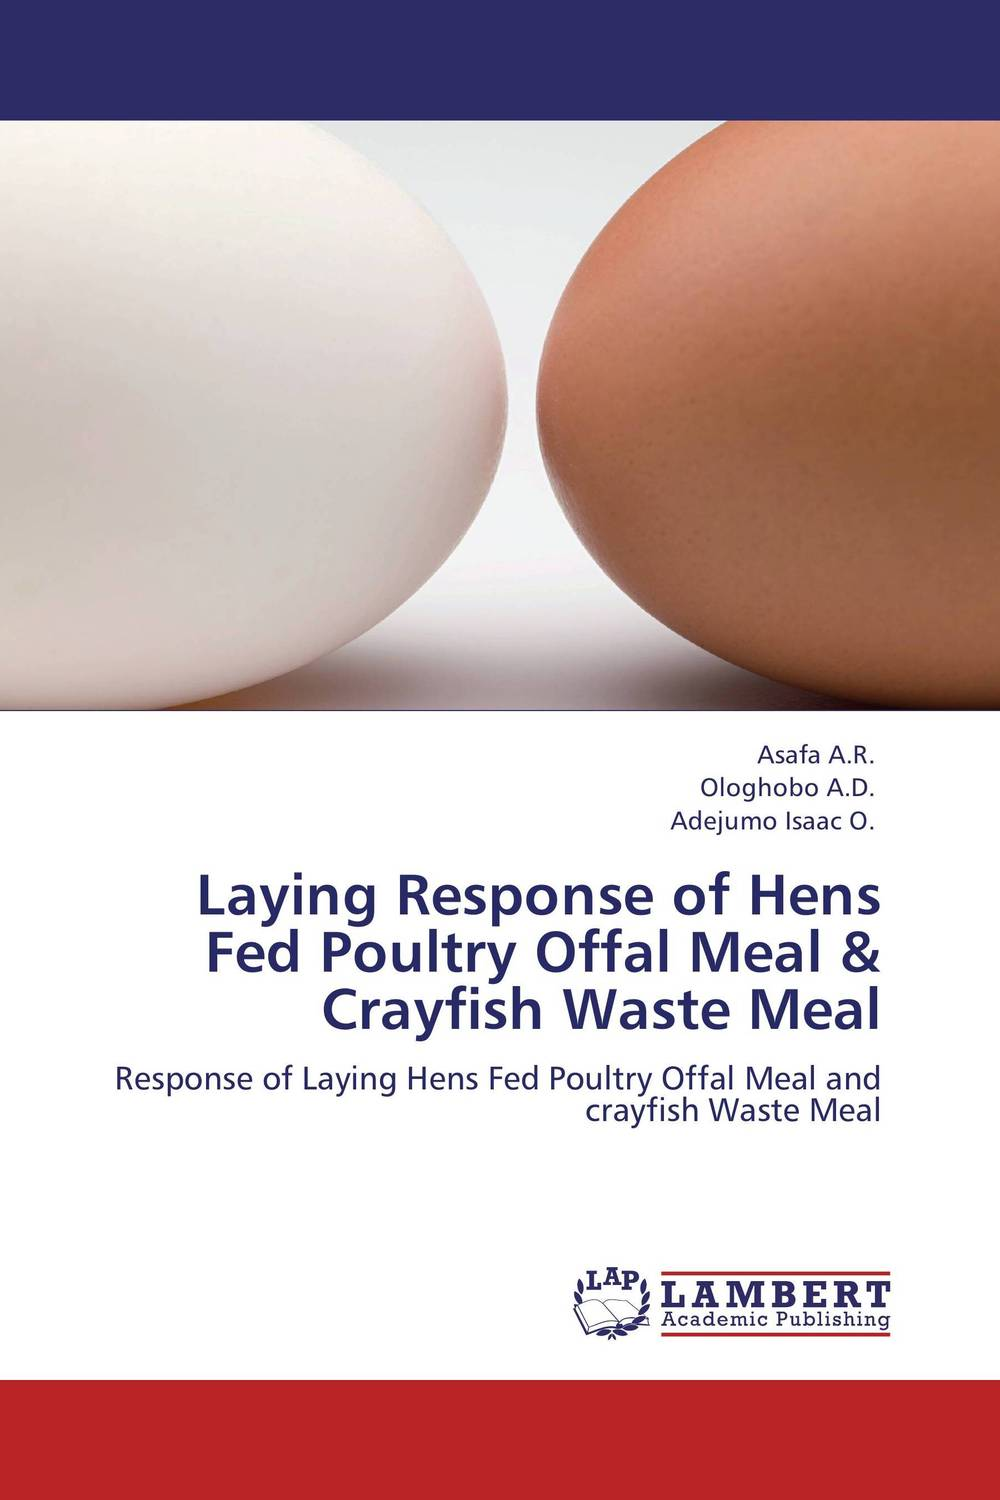 Laying Response of Hens Fed Poultry Offal Meal & Crayfish Waste Meal using crayfish waste meal and poultry offal meal in place of fishmeal